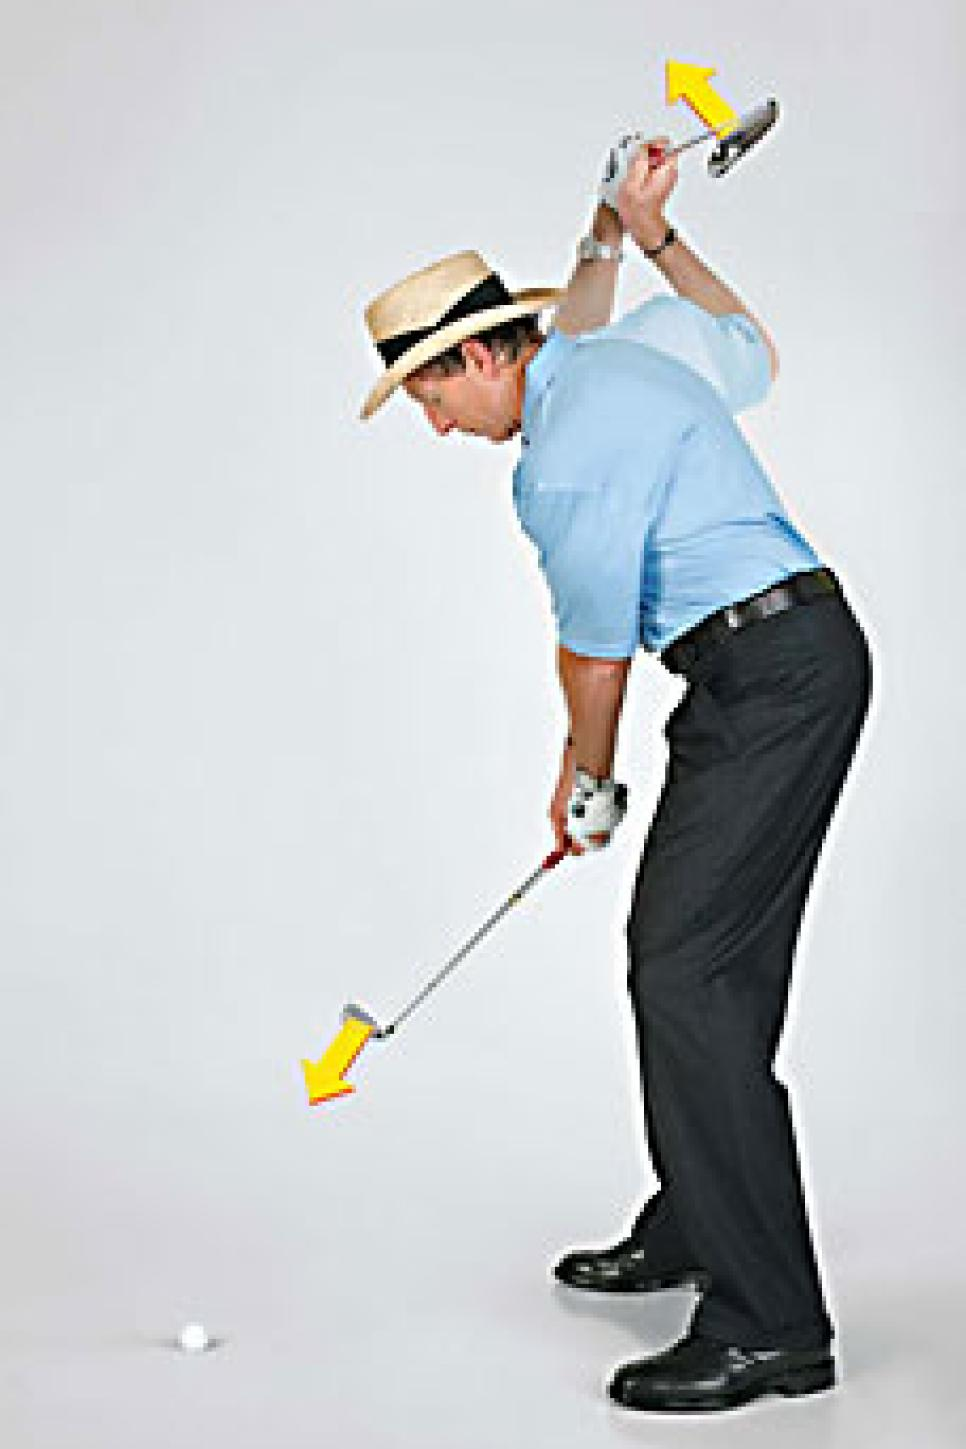 instruction-2009-06-inar01_leadbetter_clubface.jpg